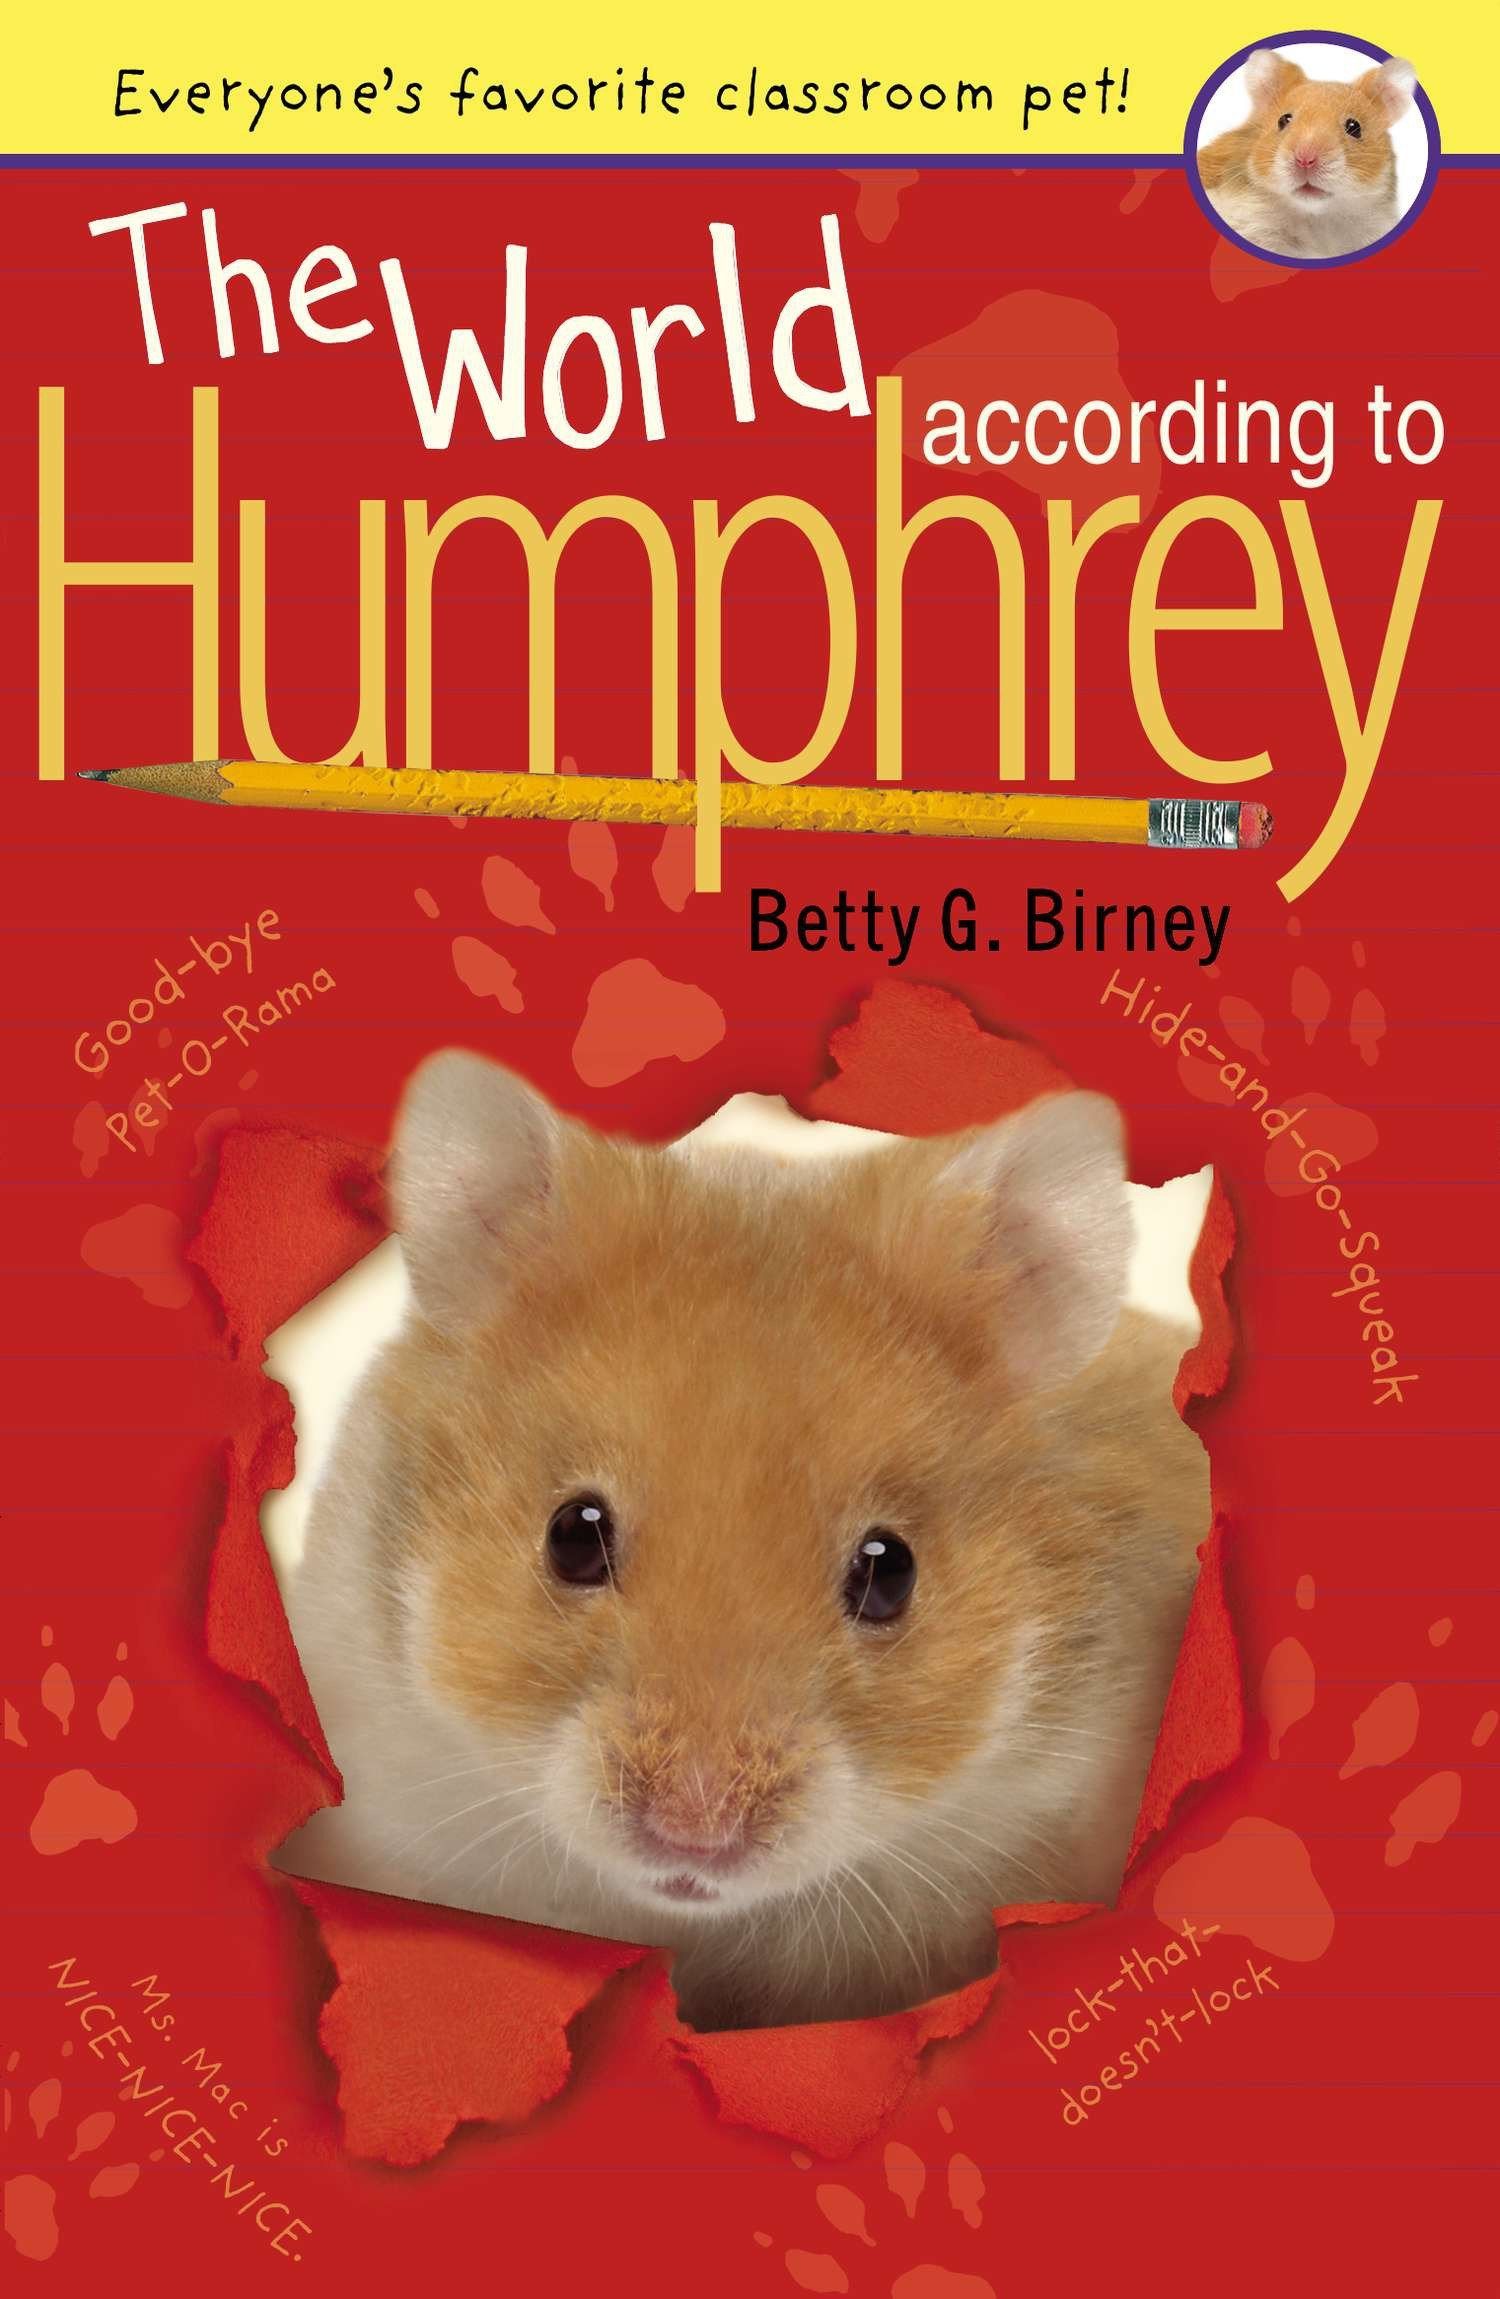 The world according to Humphrey cover image